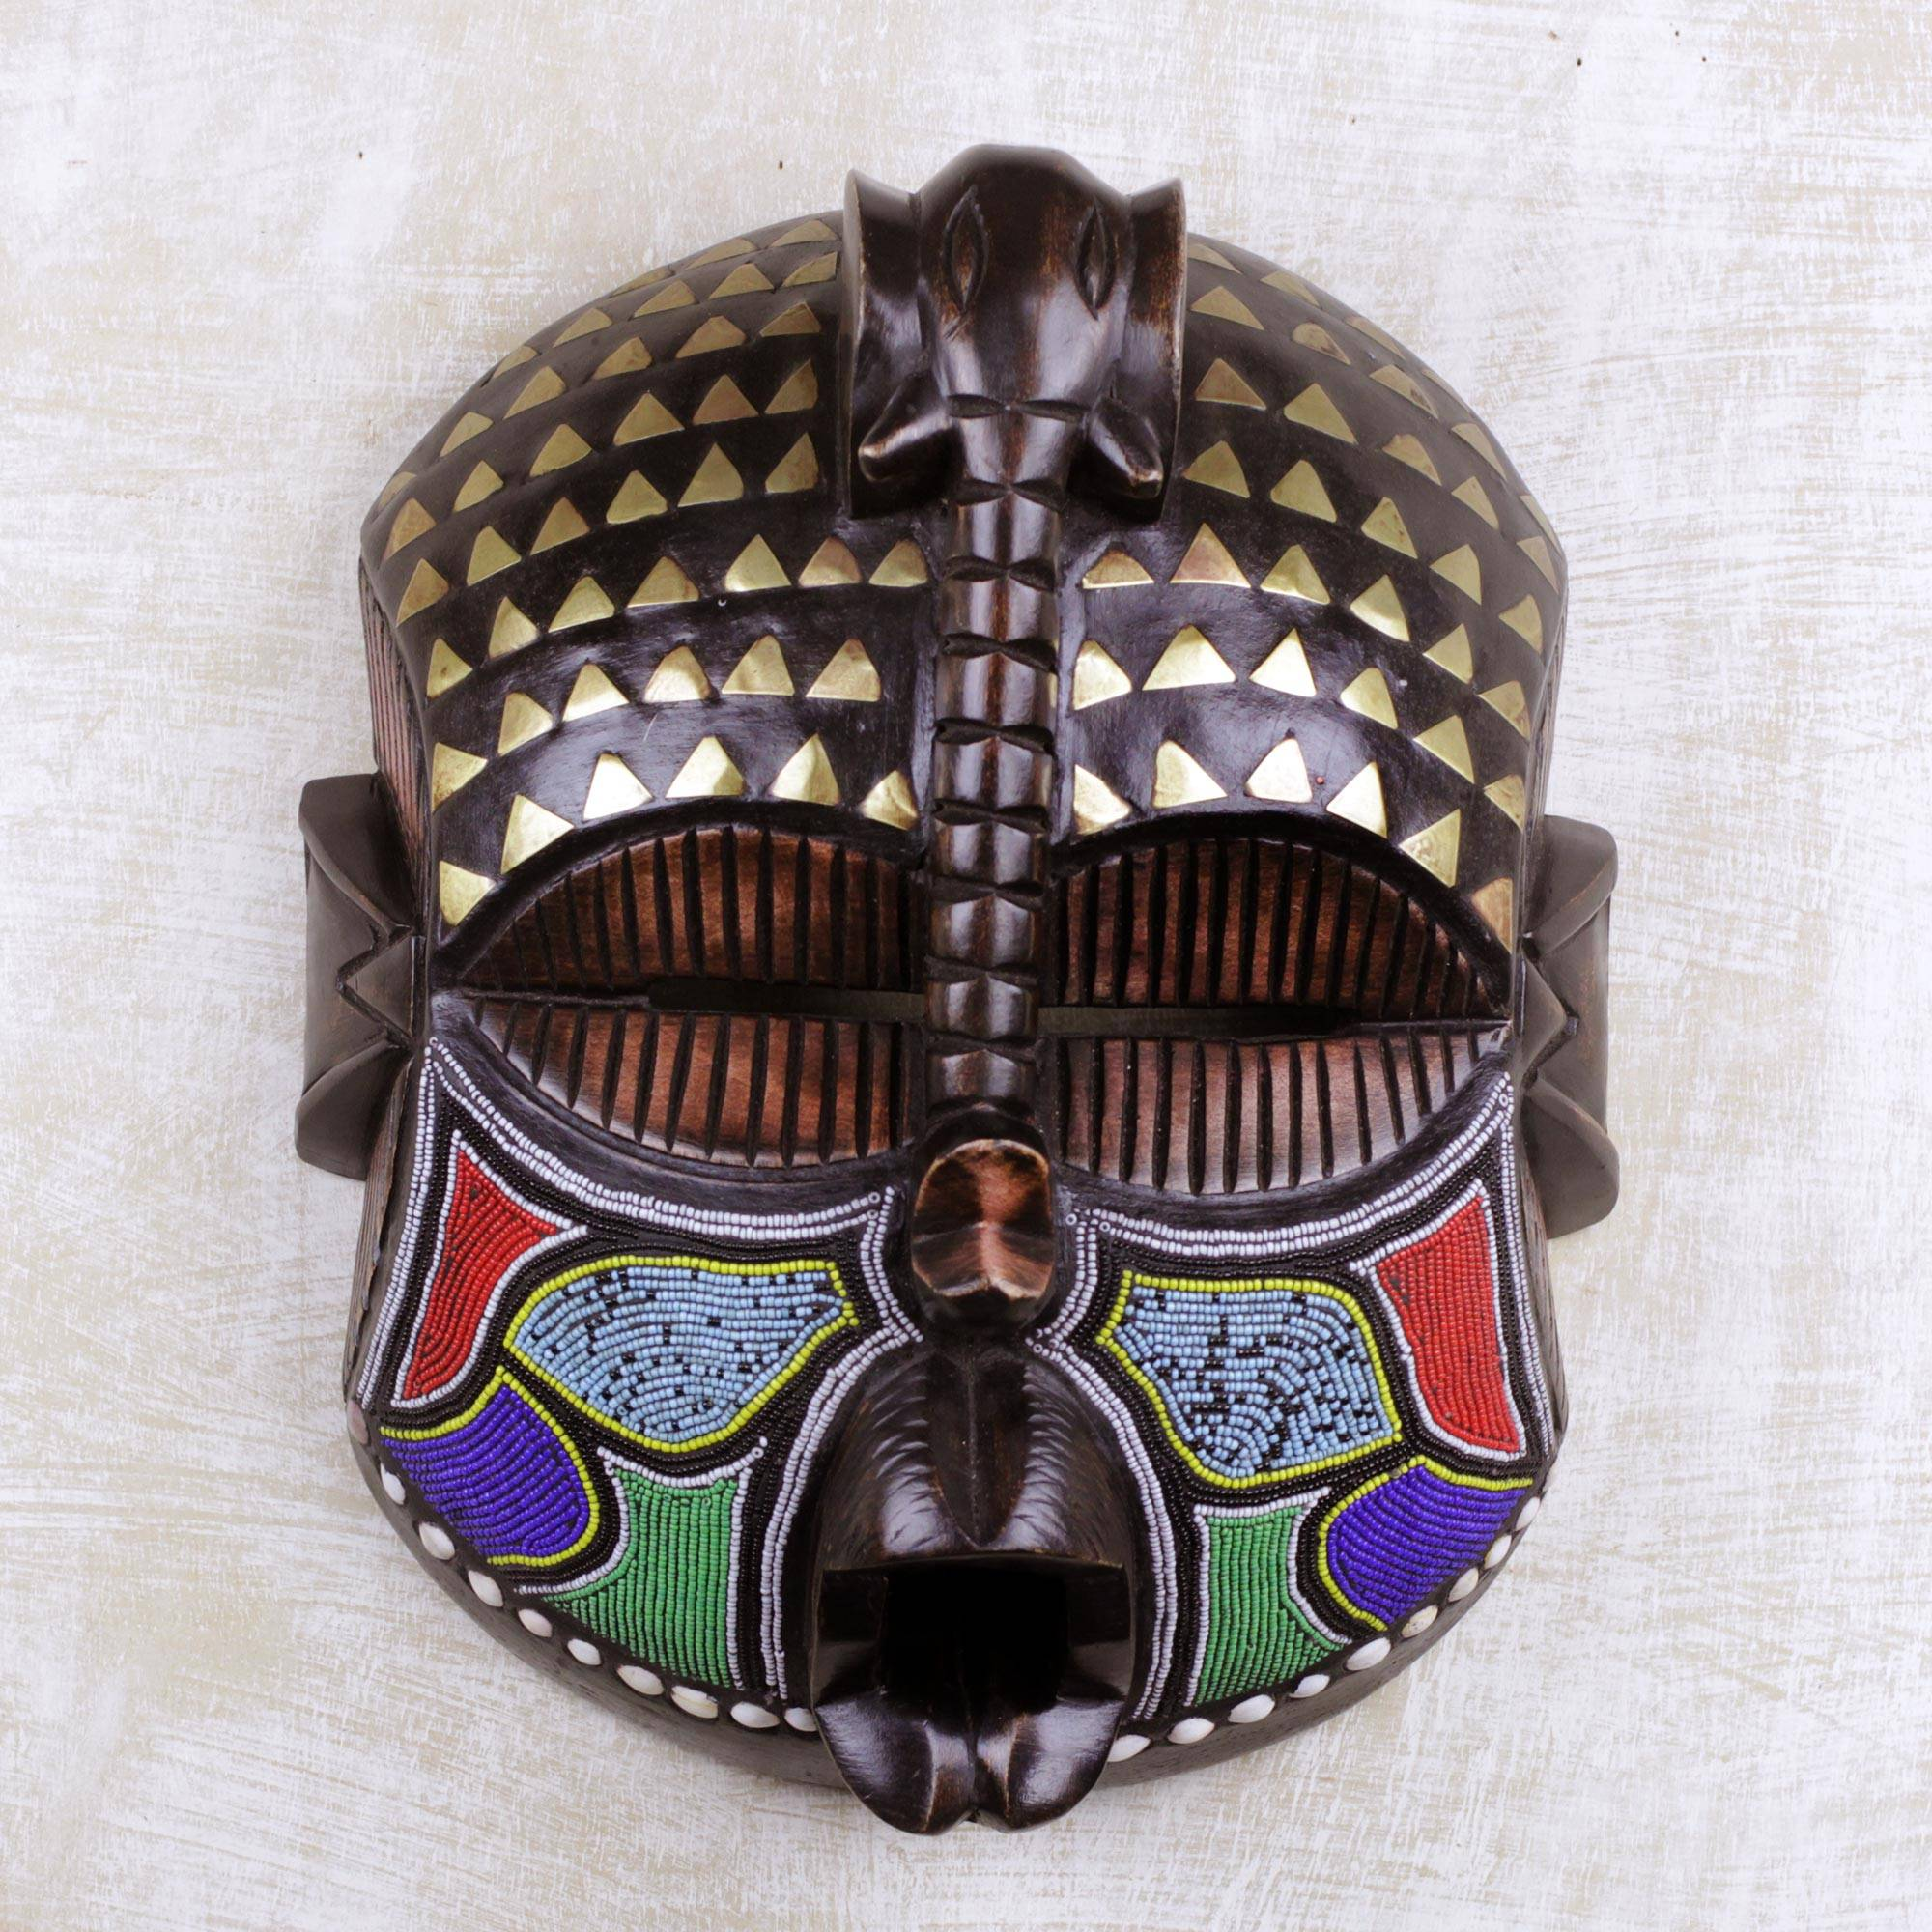 Akyiglinyi Elephant Themed Wood Mask with Brass and Glass Beads